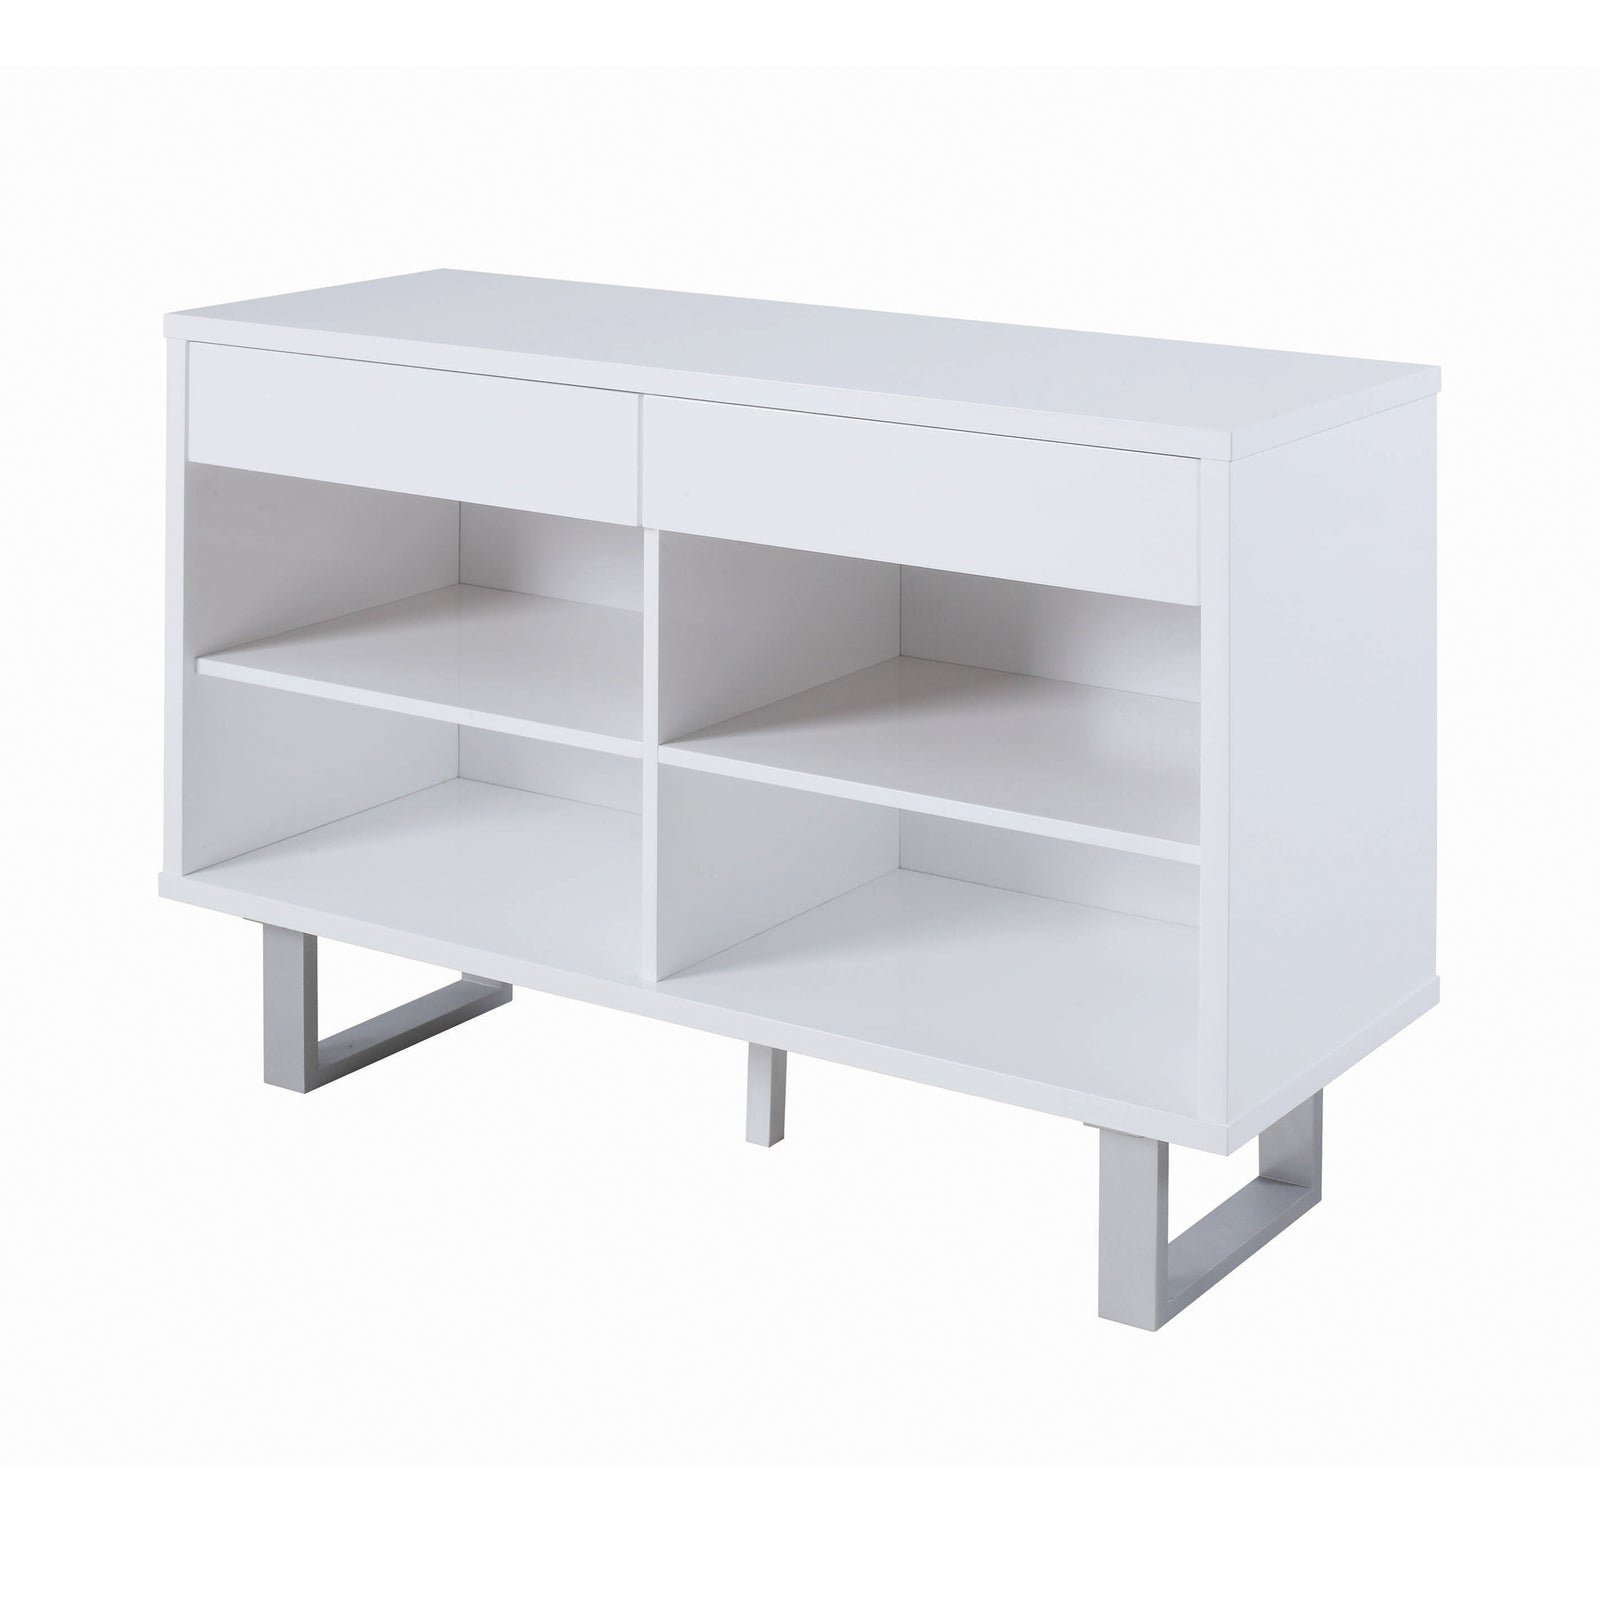 Coaster 705699 | 2-Drawer Open Shelves Sofa Table High Glossy White